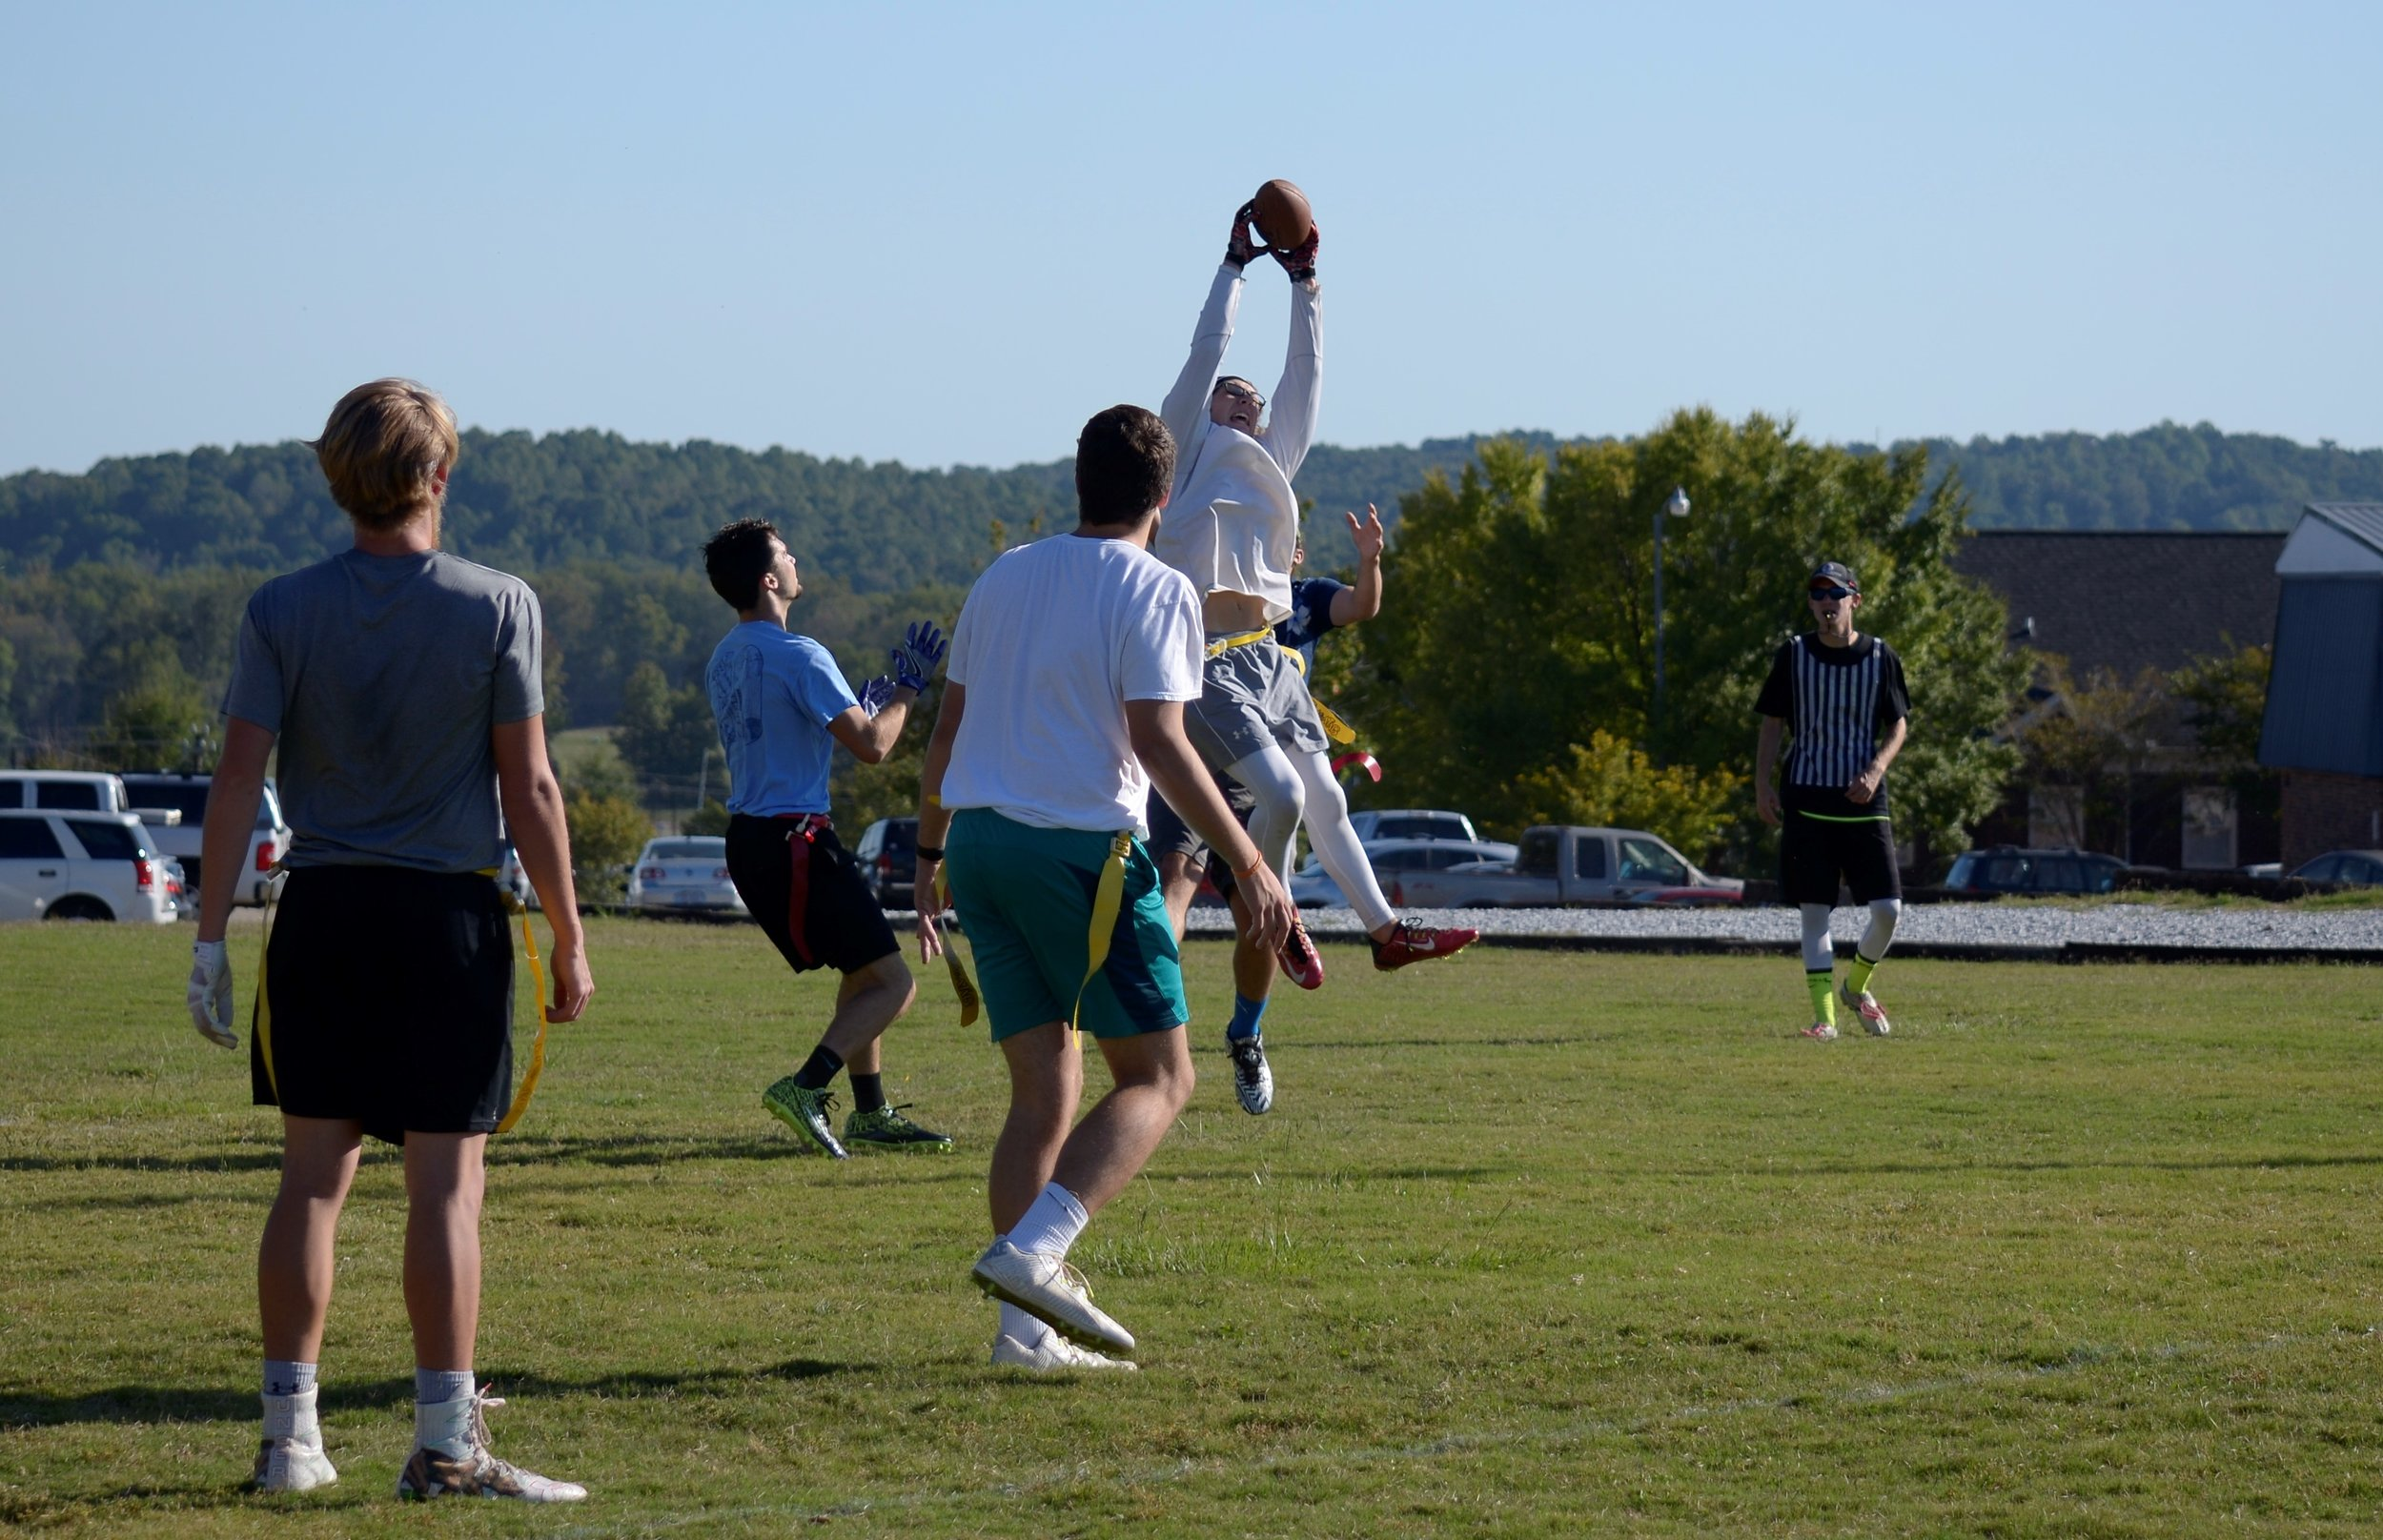 Jonathan Varner catches a great throw past his defenders for a touchdown.